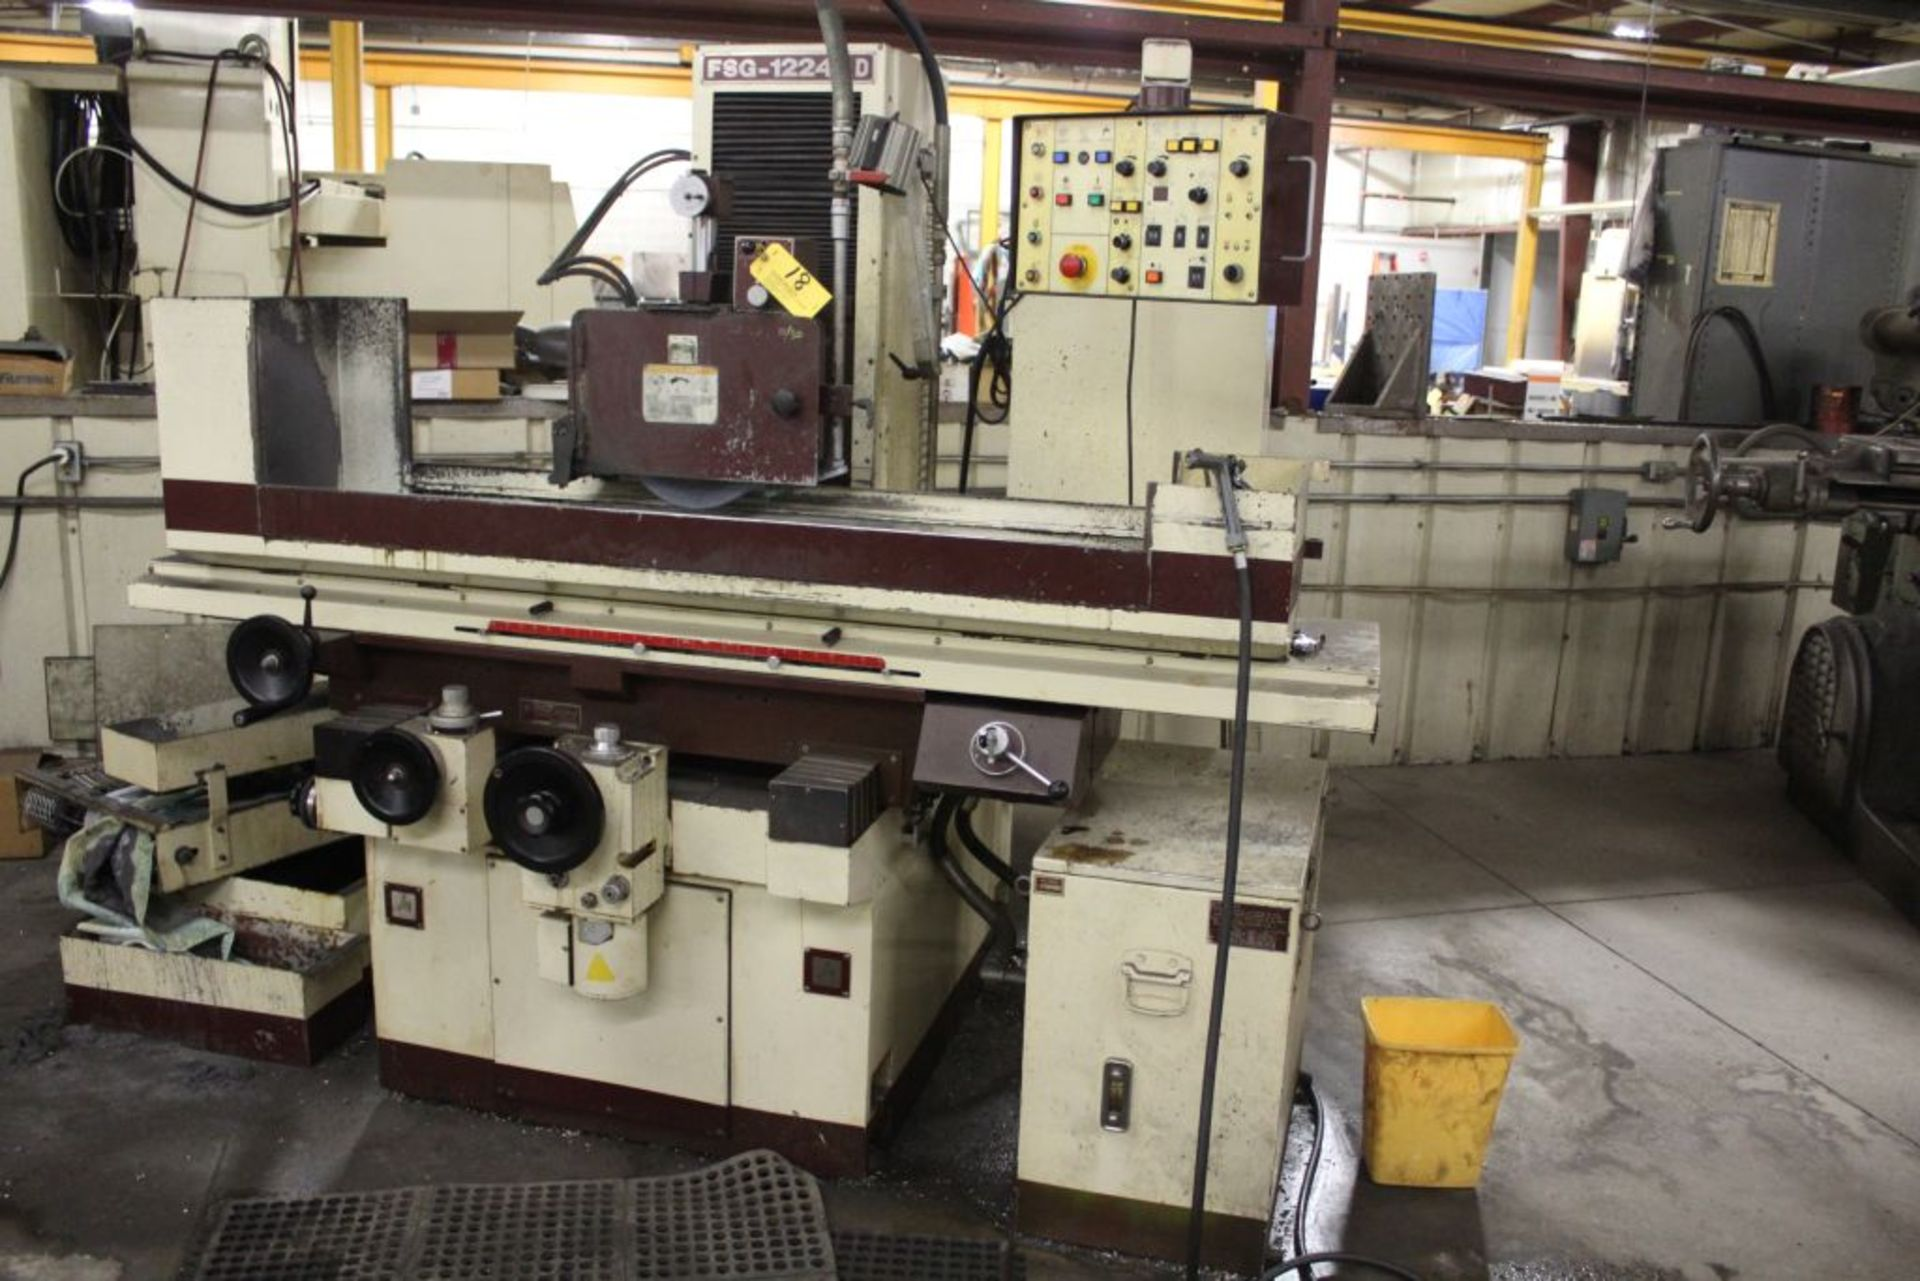 "Lot 018 - Chevalier Surface grinder, model FSG-1224AD, sn F1871004, 16 x 32"", magnetic chuck 24"" x 12""."